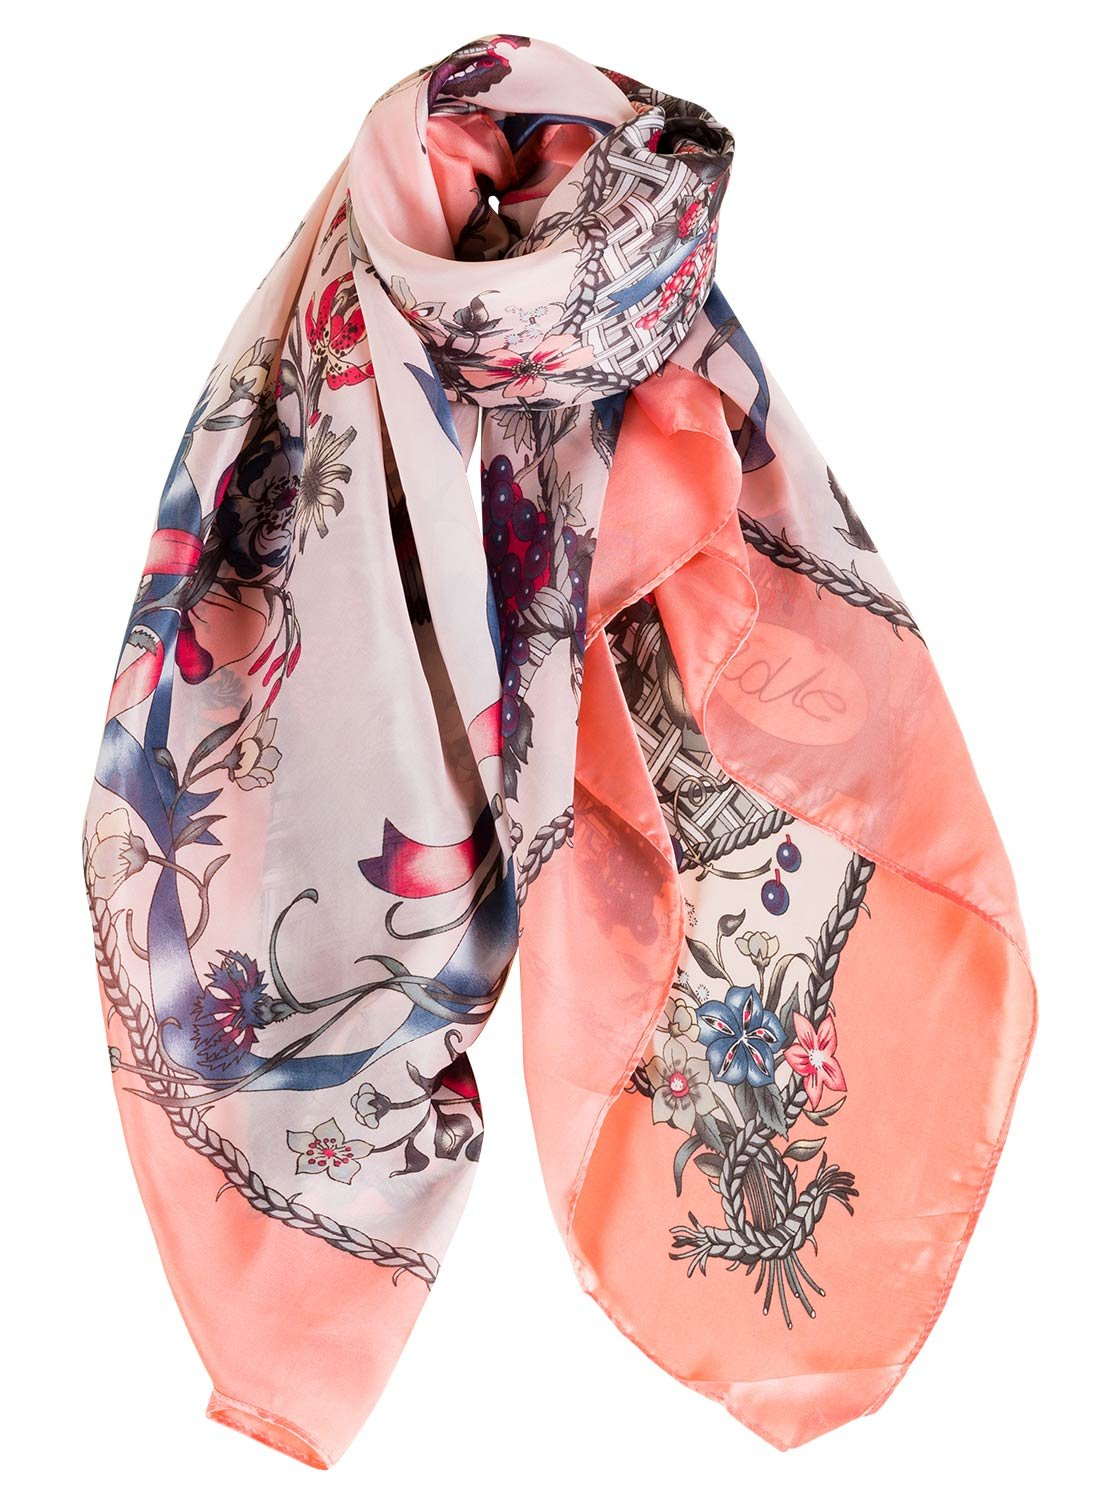 Women Cotton Long Scarf Lady's Shawls Large Soft Multicolor Sea Beach Covers Spring Summer Autumn Winter Beach Wraps Shawl Pink